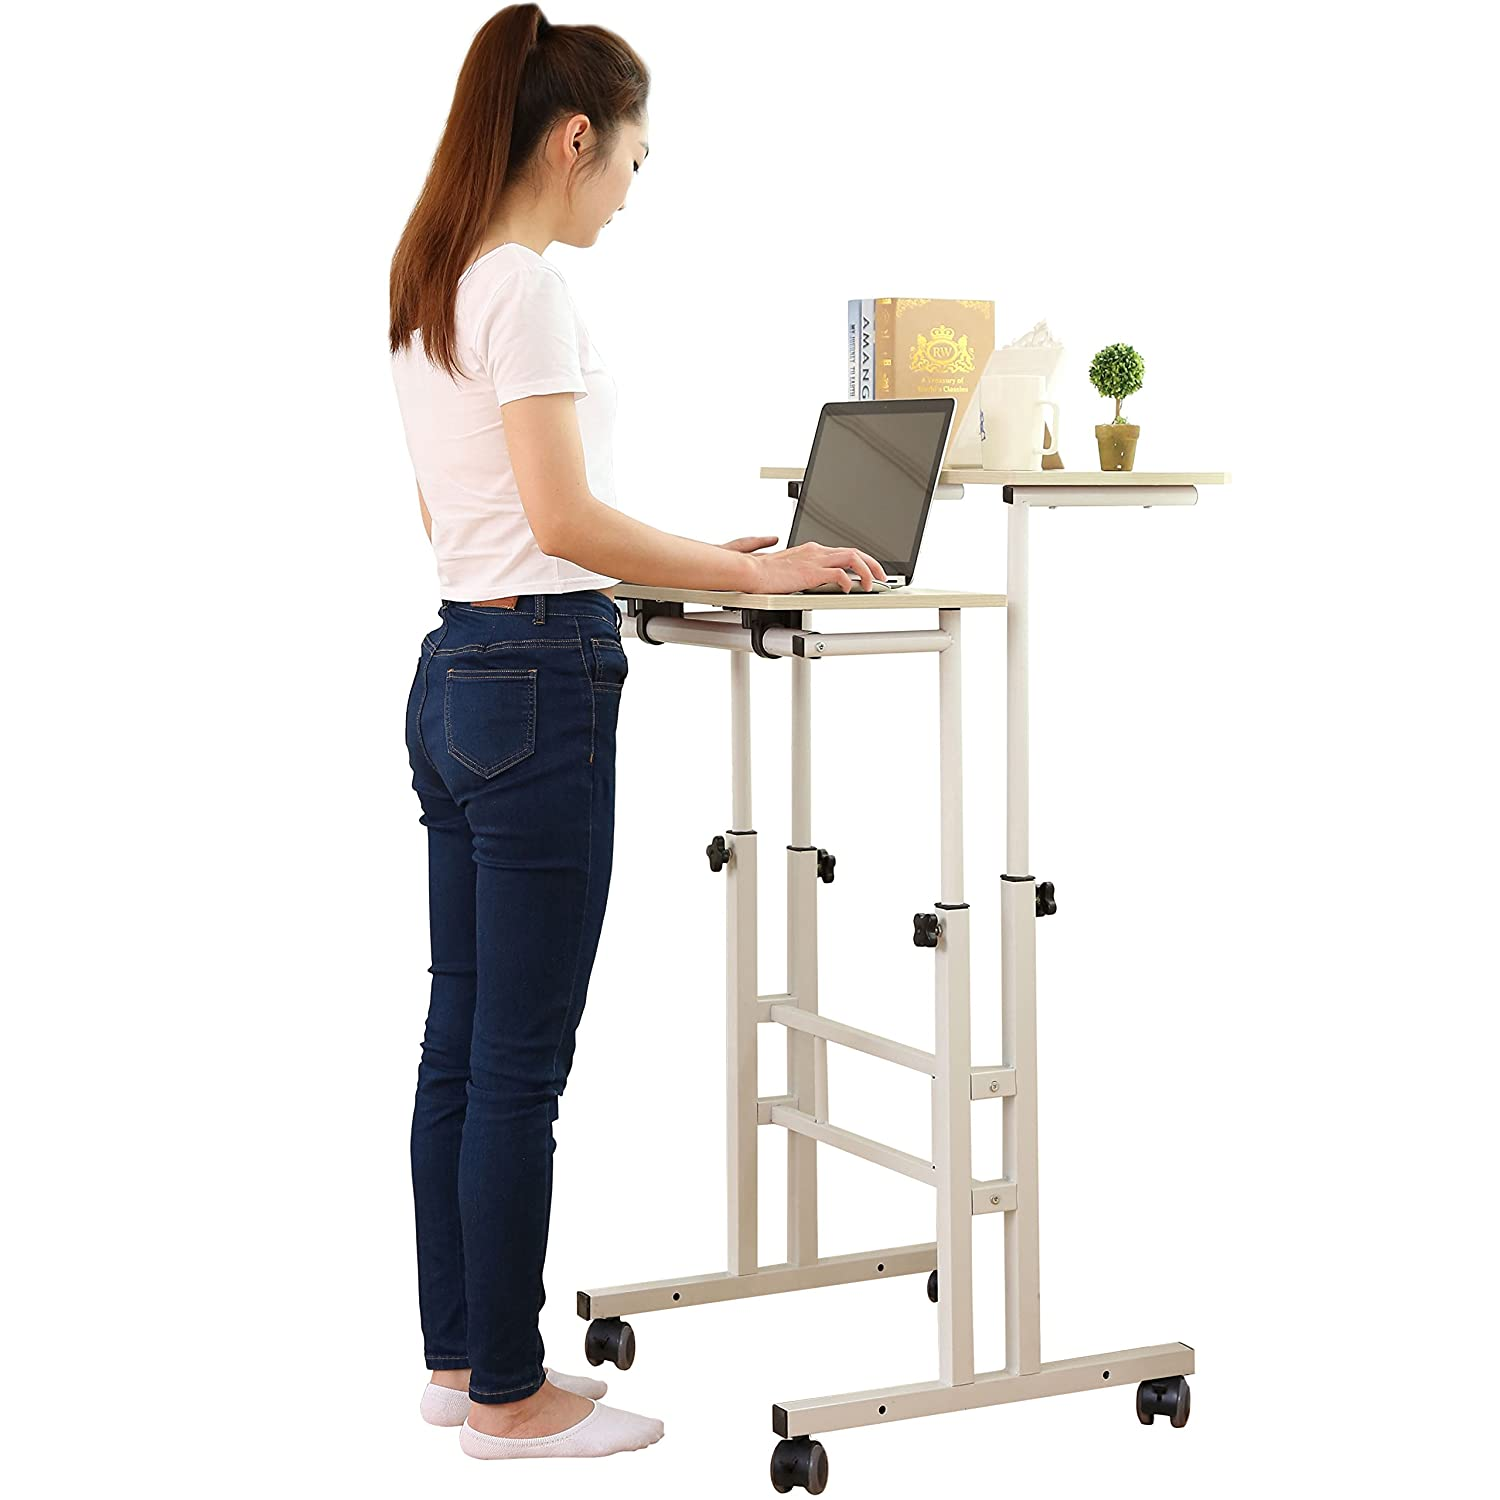 SDADI 2 Inches Carpet Wheels Mobile Standing Desk Stand Up Desk Height Adjustable Home Office Desk with Standing and Seating 2 Modes 3.0 Edition, Light Grain S001WFLT